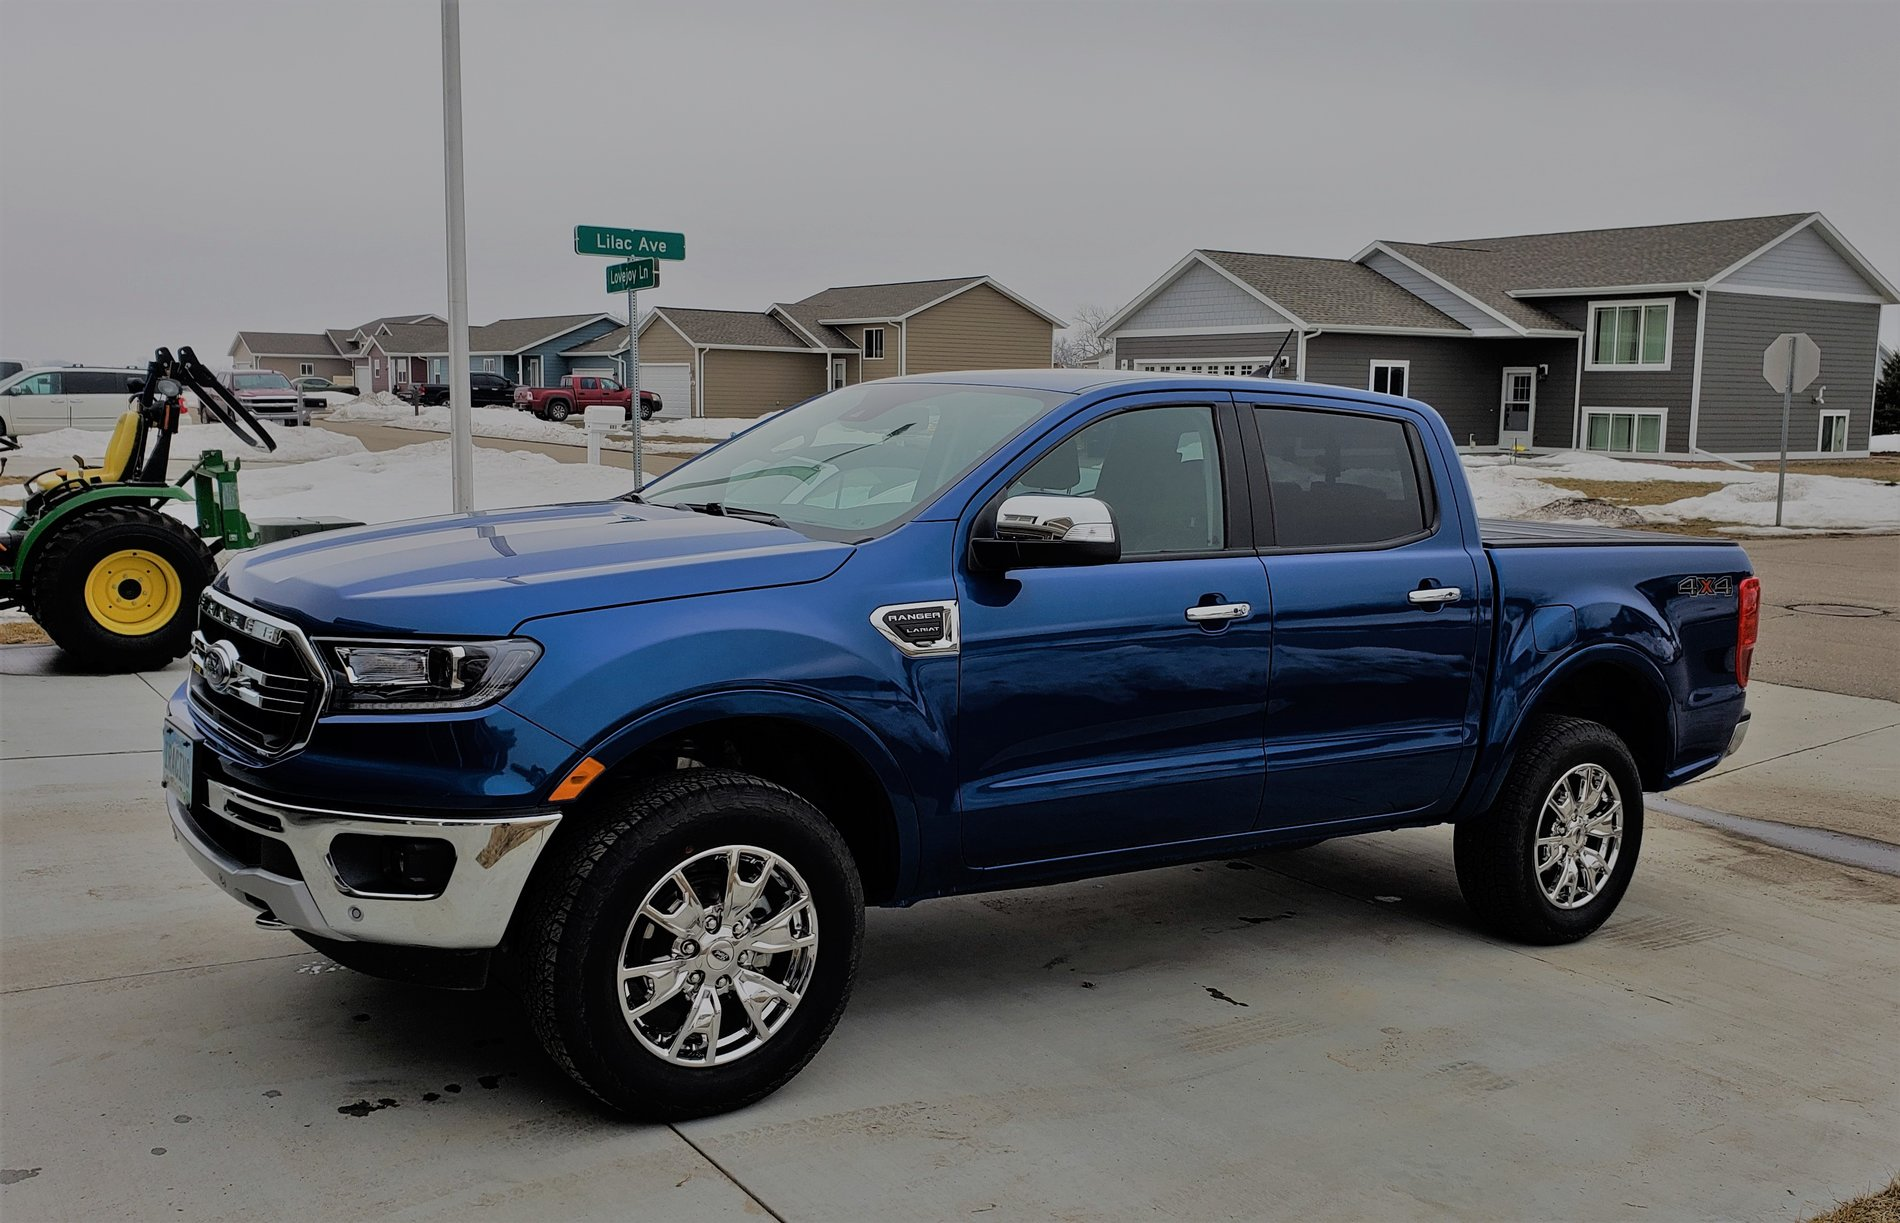 San Diego Ford >> LIGHTNING BLUE Ranger Club Thread | Page 7 | 2019+ Ford Ranger and Raptor Forum (5th Generation ...